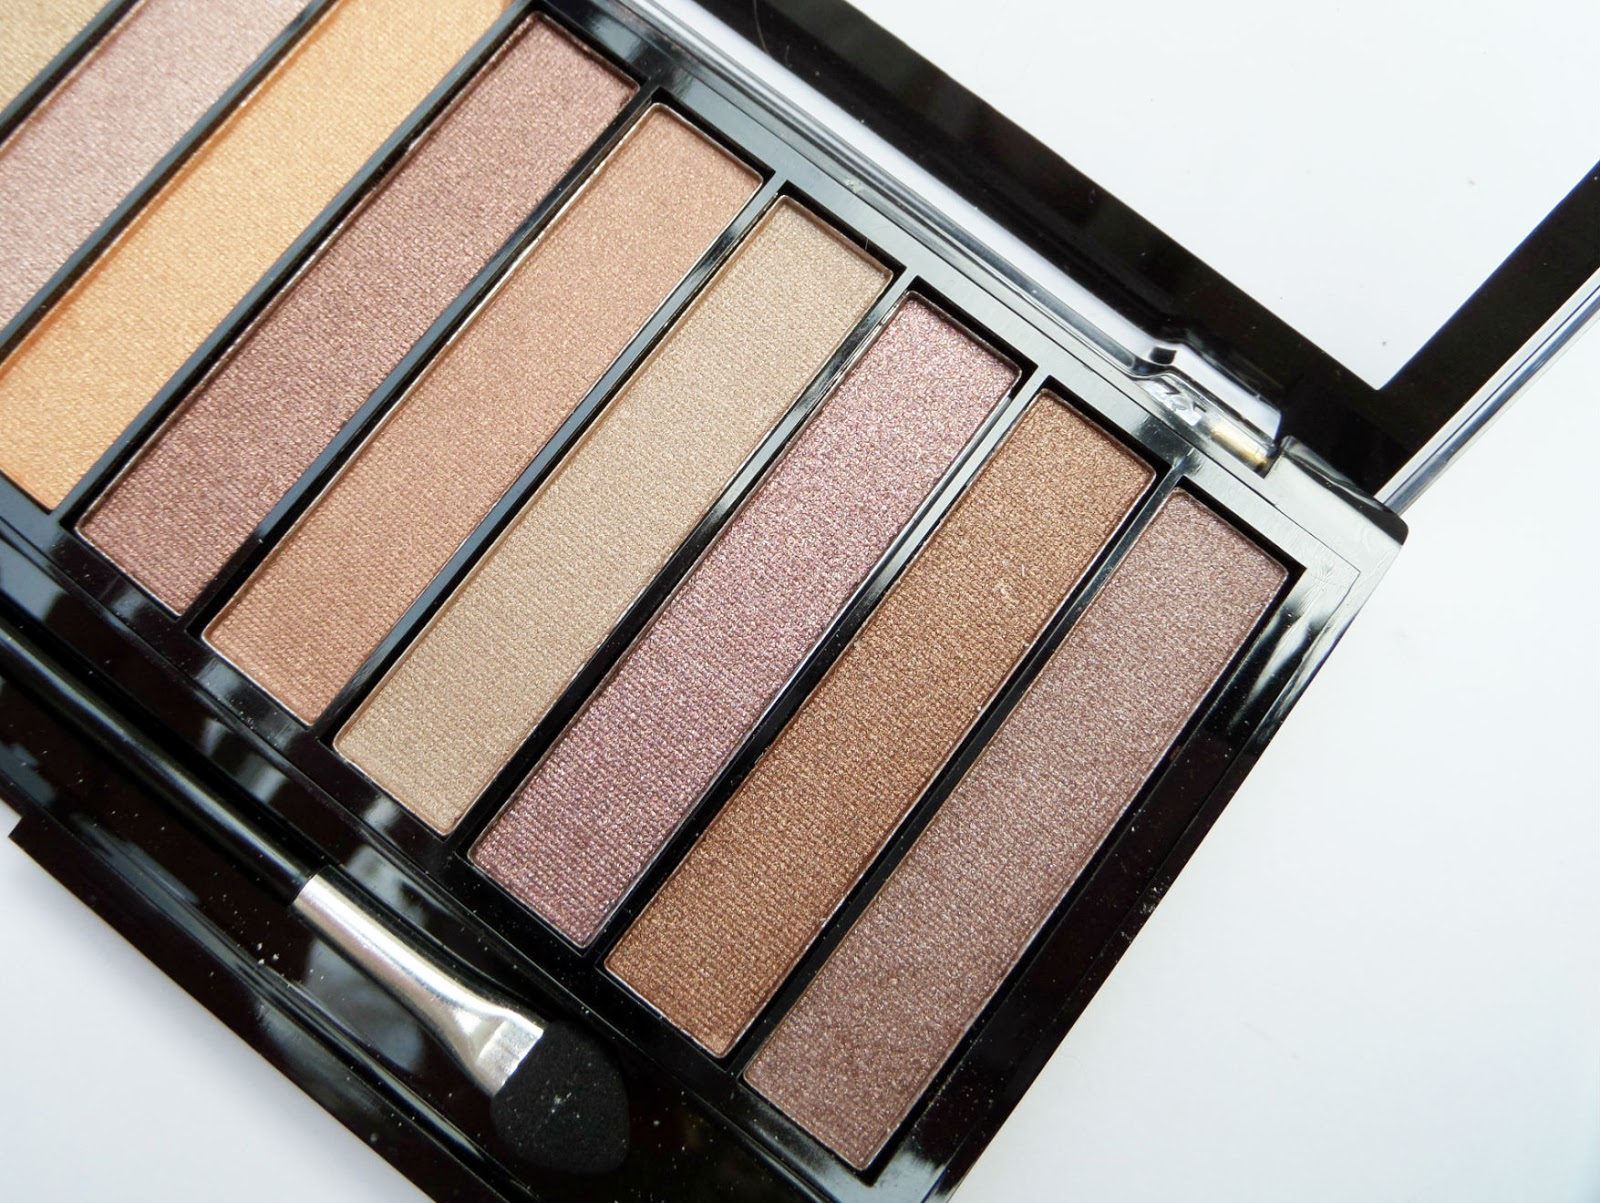 Inside The Makeup Revolution Essential Shimmer Eyeshadow Palette